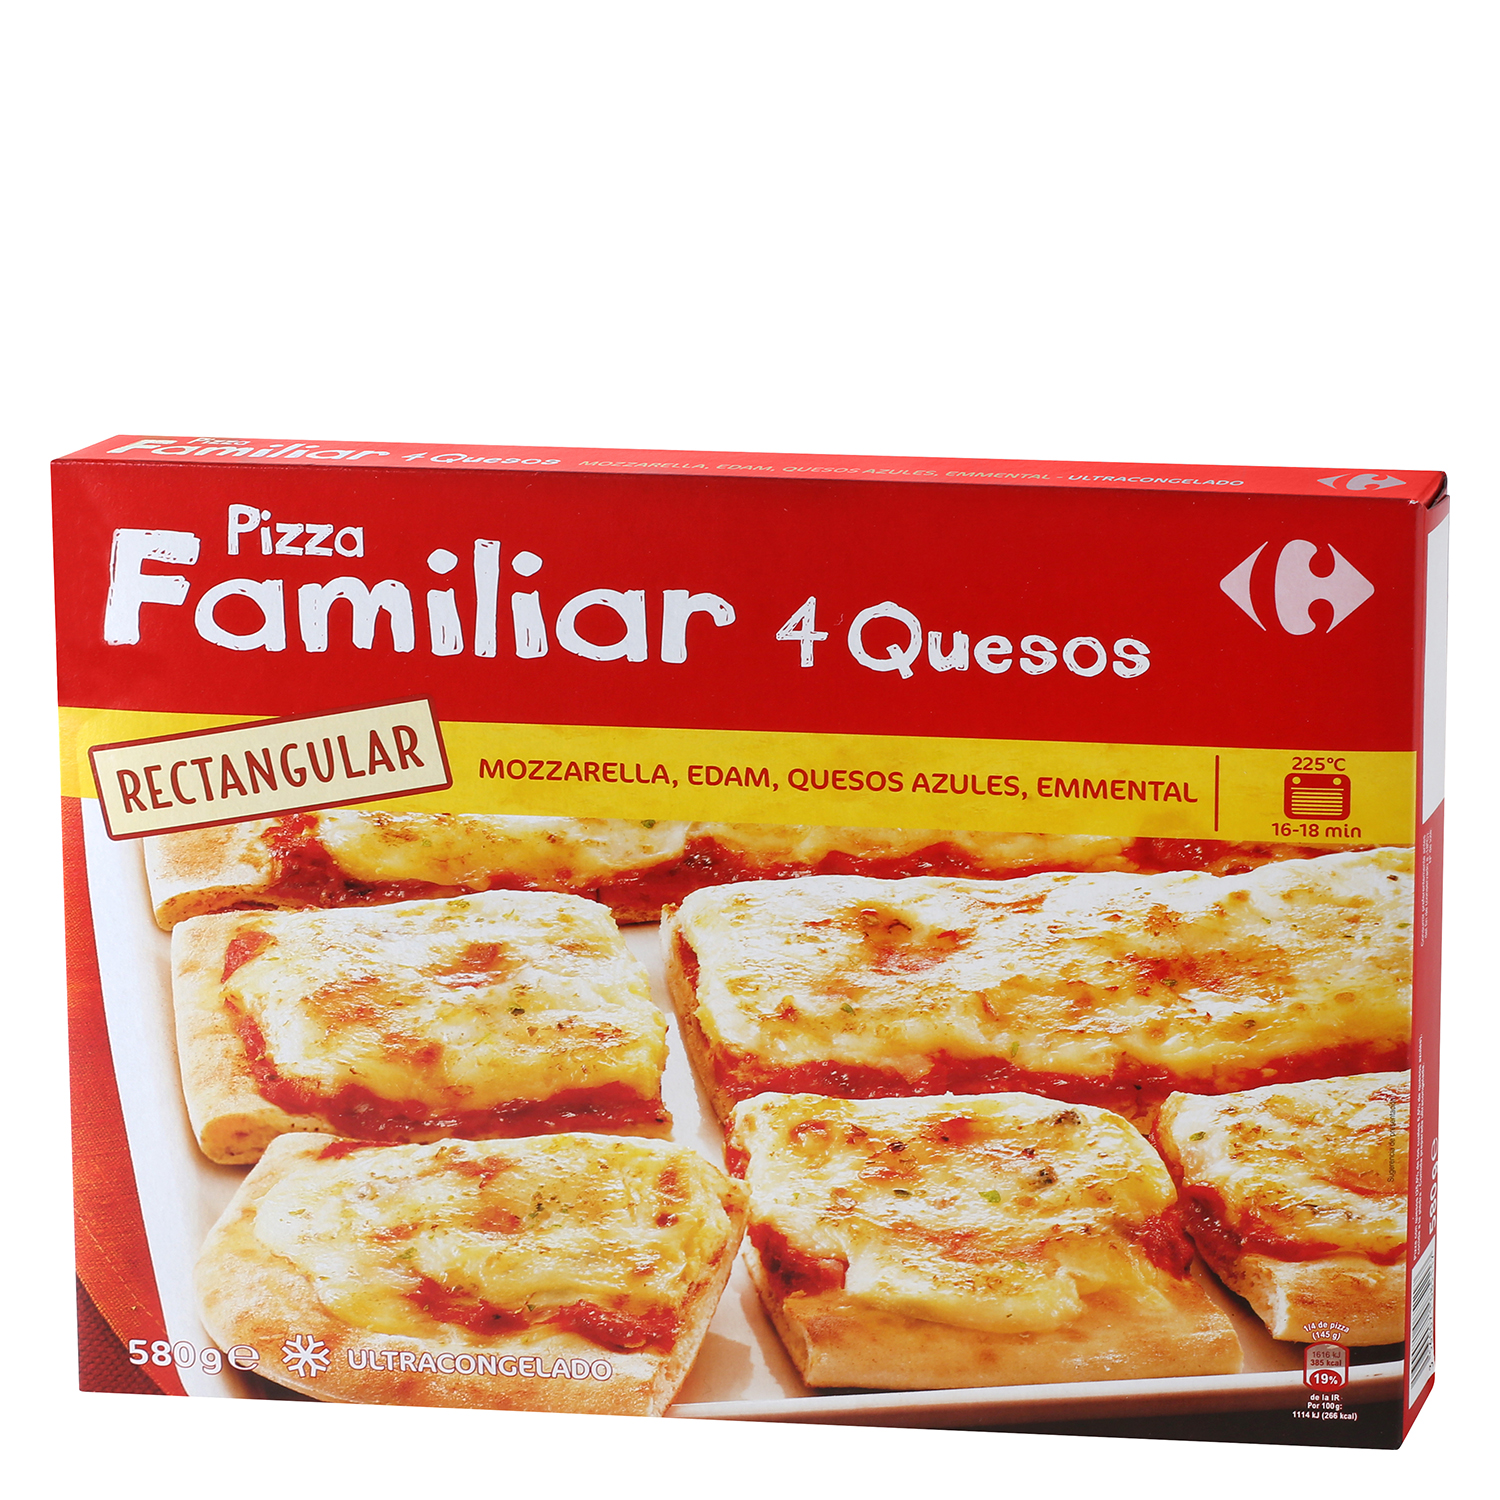 Pizza familiar rectangular 4 quesos